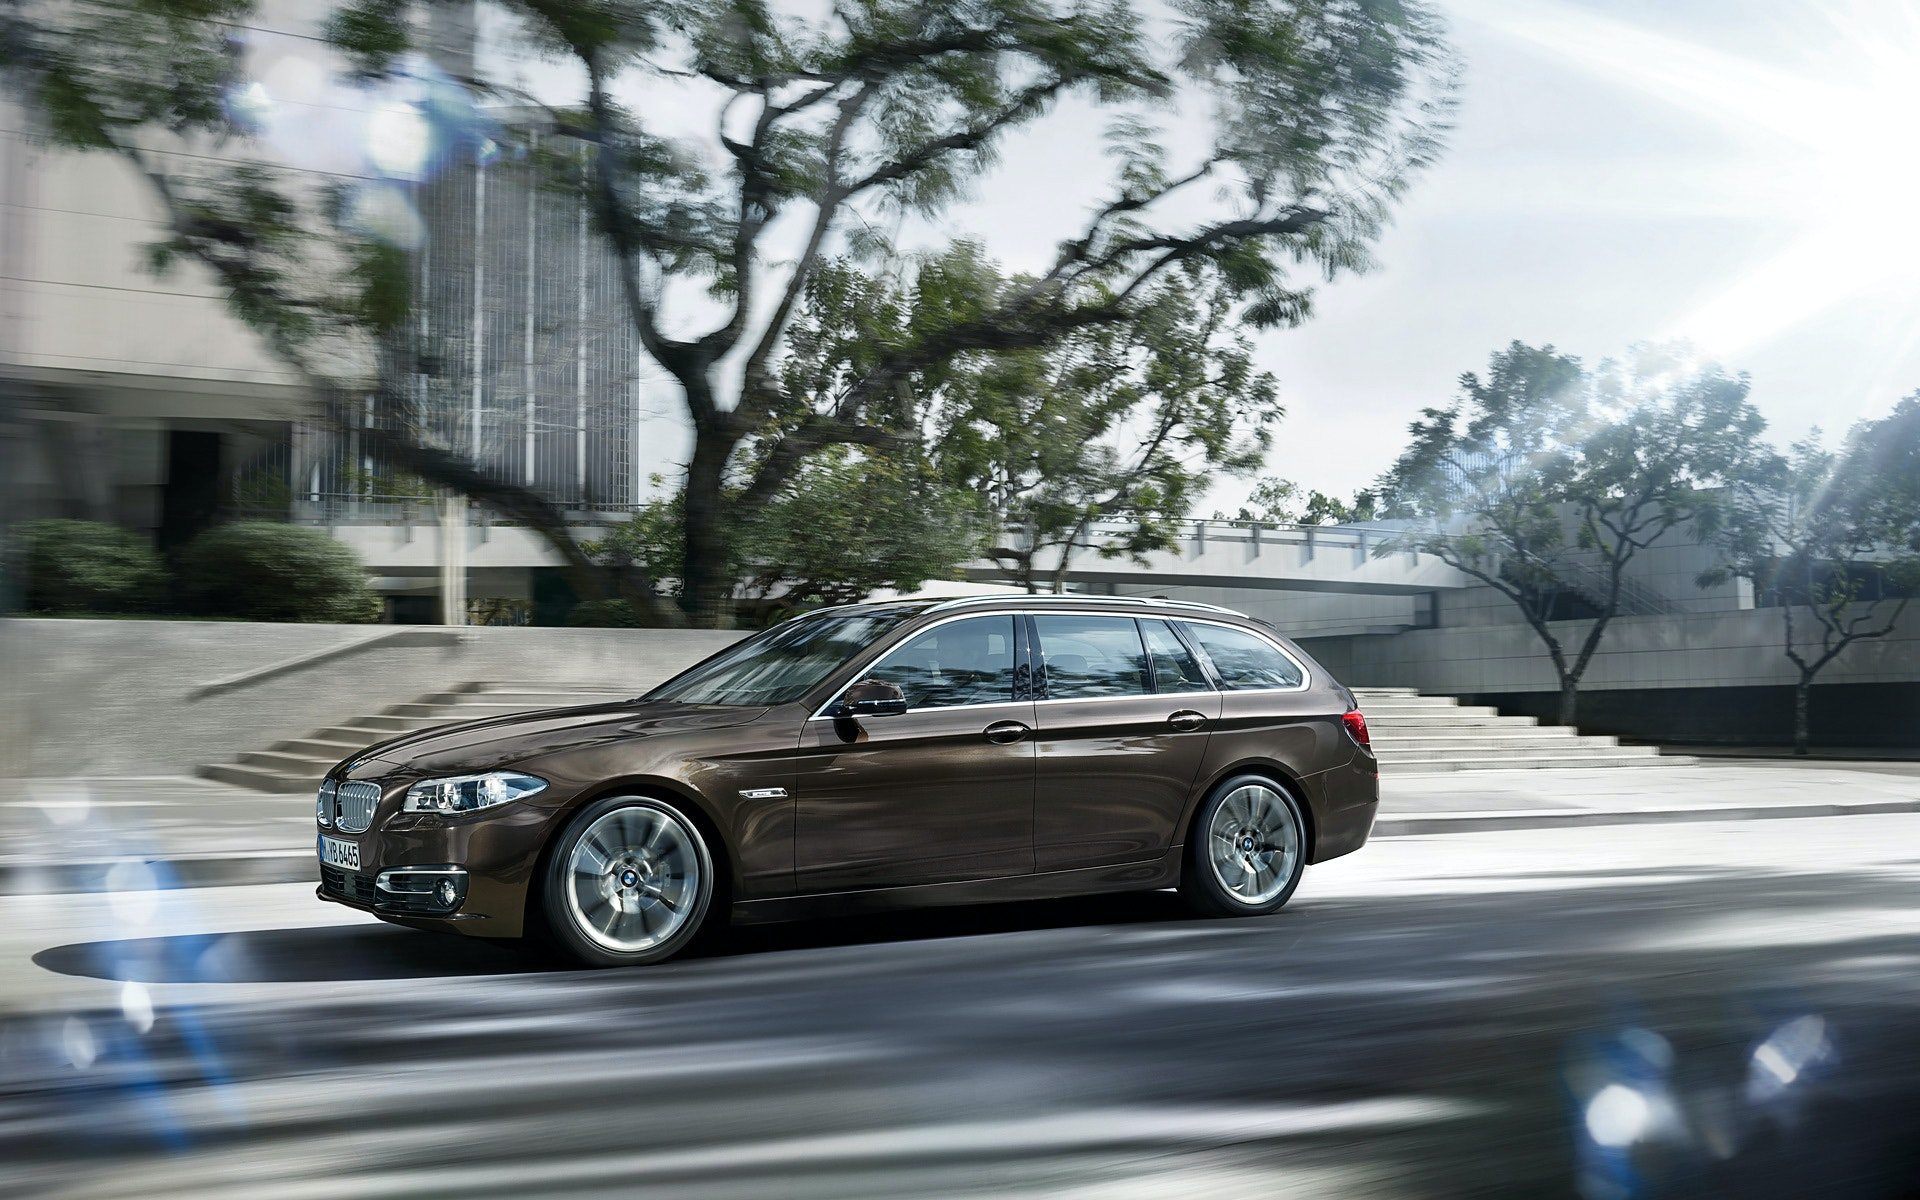 Bmw 5 Series Touring F11 Official Wallpapers Video And Press Release 2010 2011 Bmw 5 Series Forum F10